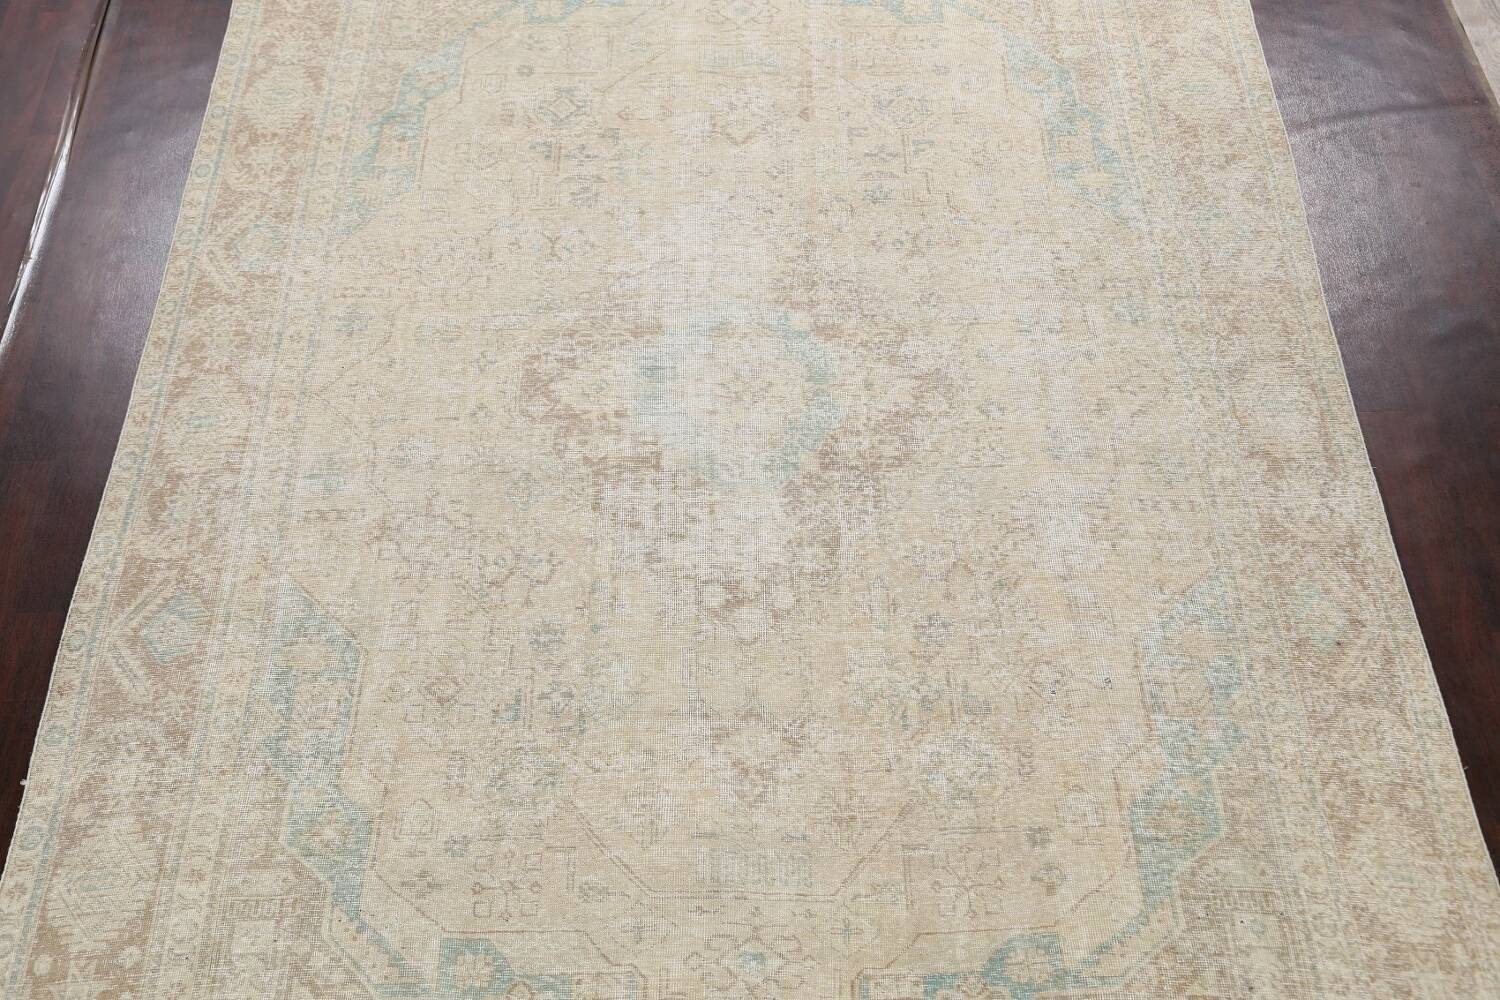 Antique Muted Distressed Tabriz Persian Area Rug 9x13 image 3